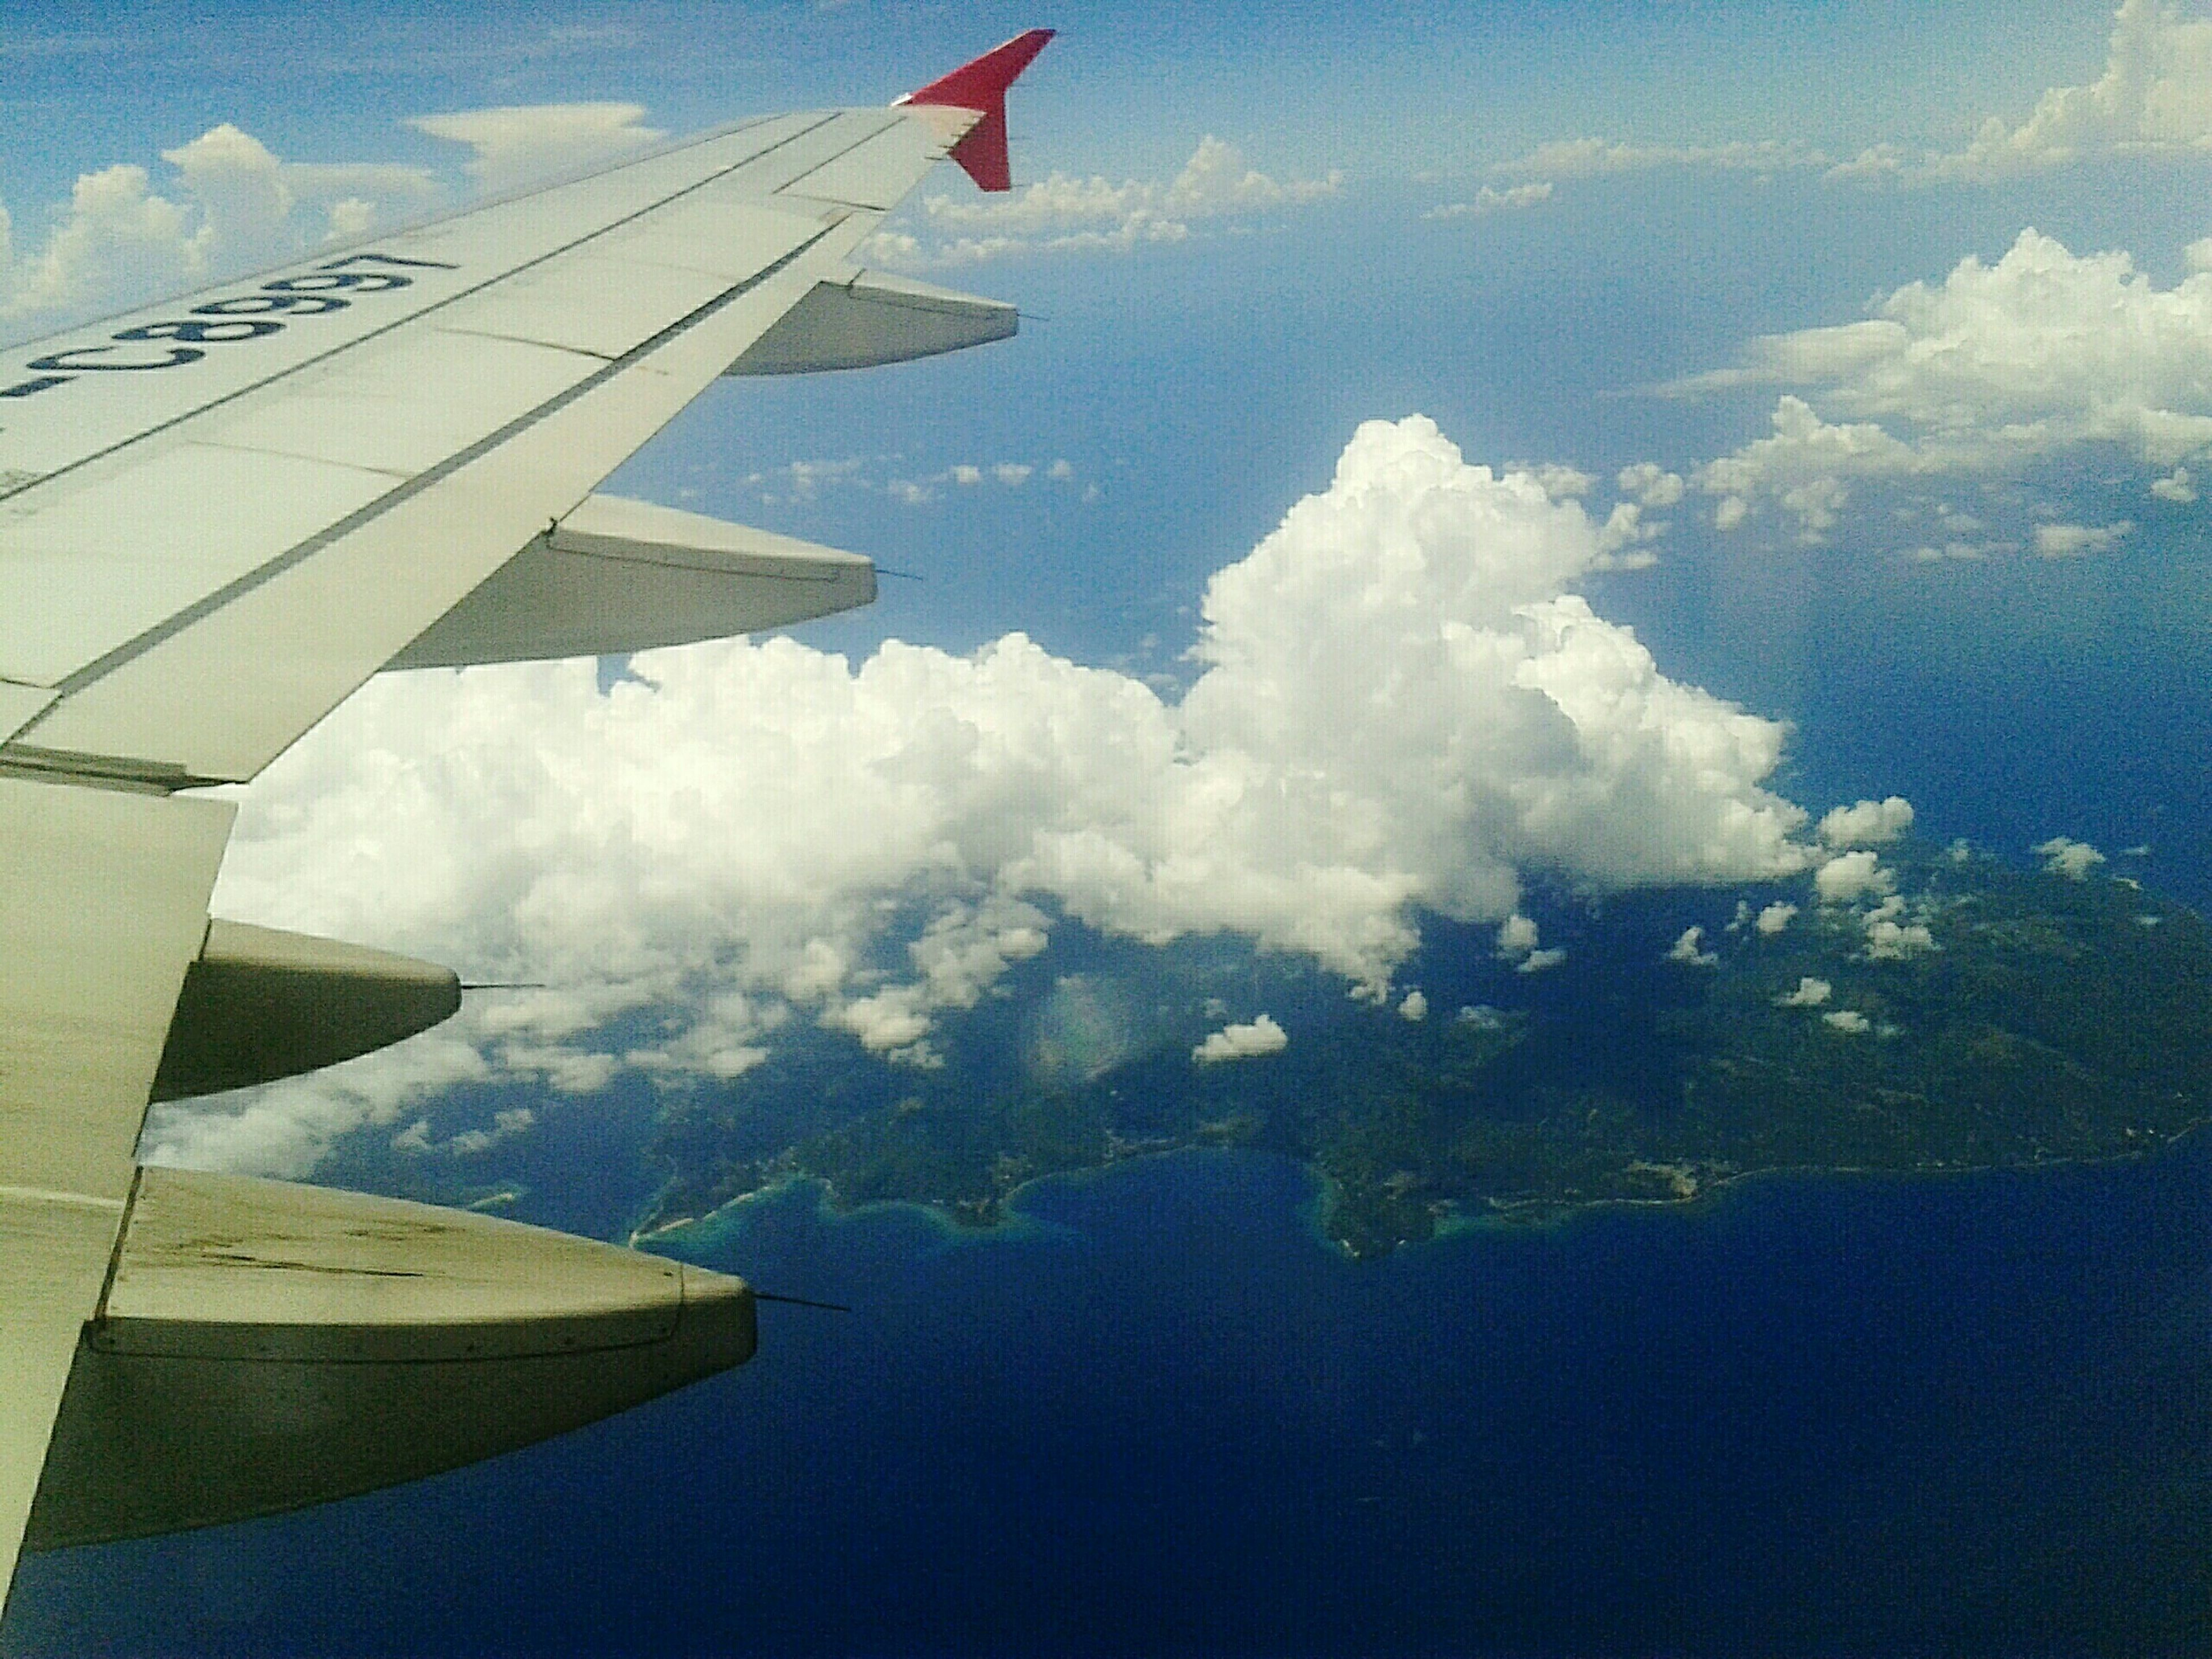 transportation, mode of transport, flying, aircraft wing, airplane, air vehicle, part of, cropped, mid-air, aerial view, travel, nautical vessel, sky, journey, on the move, water, cloud - sky, sea, nature, day